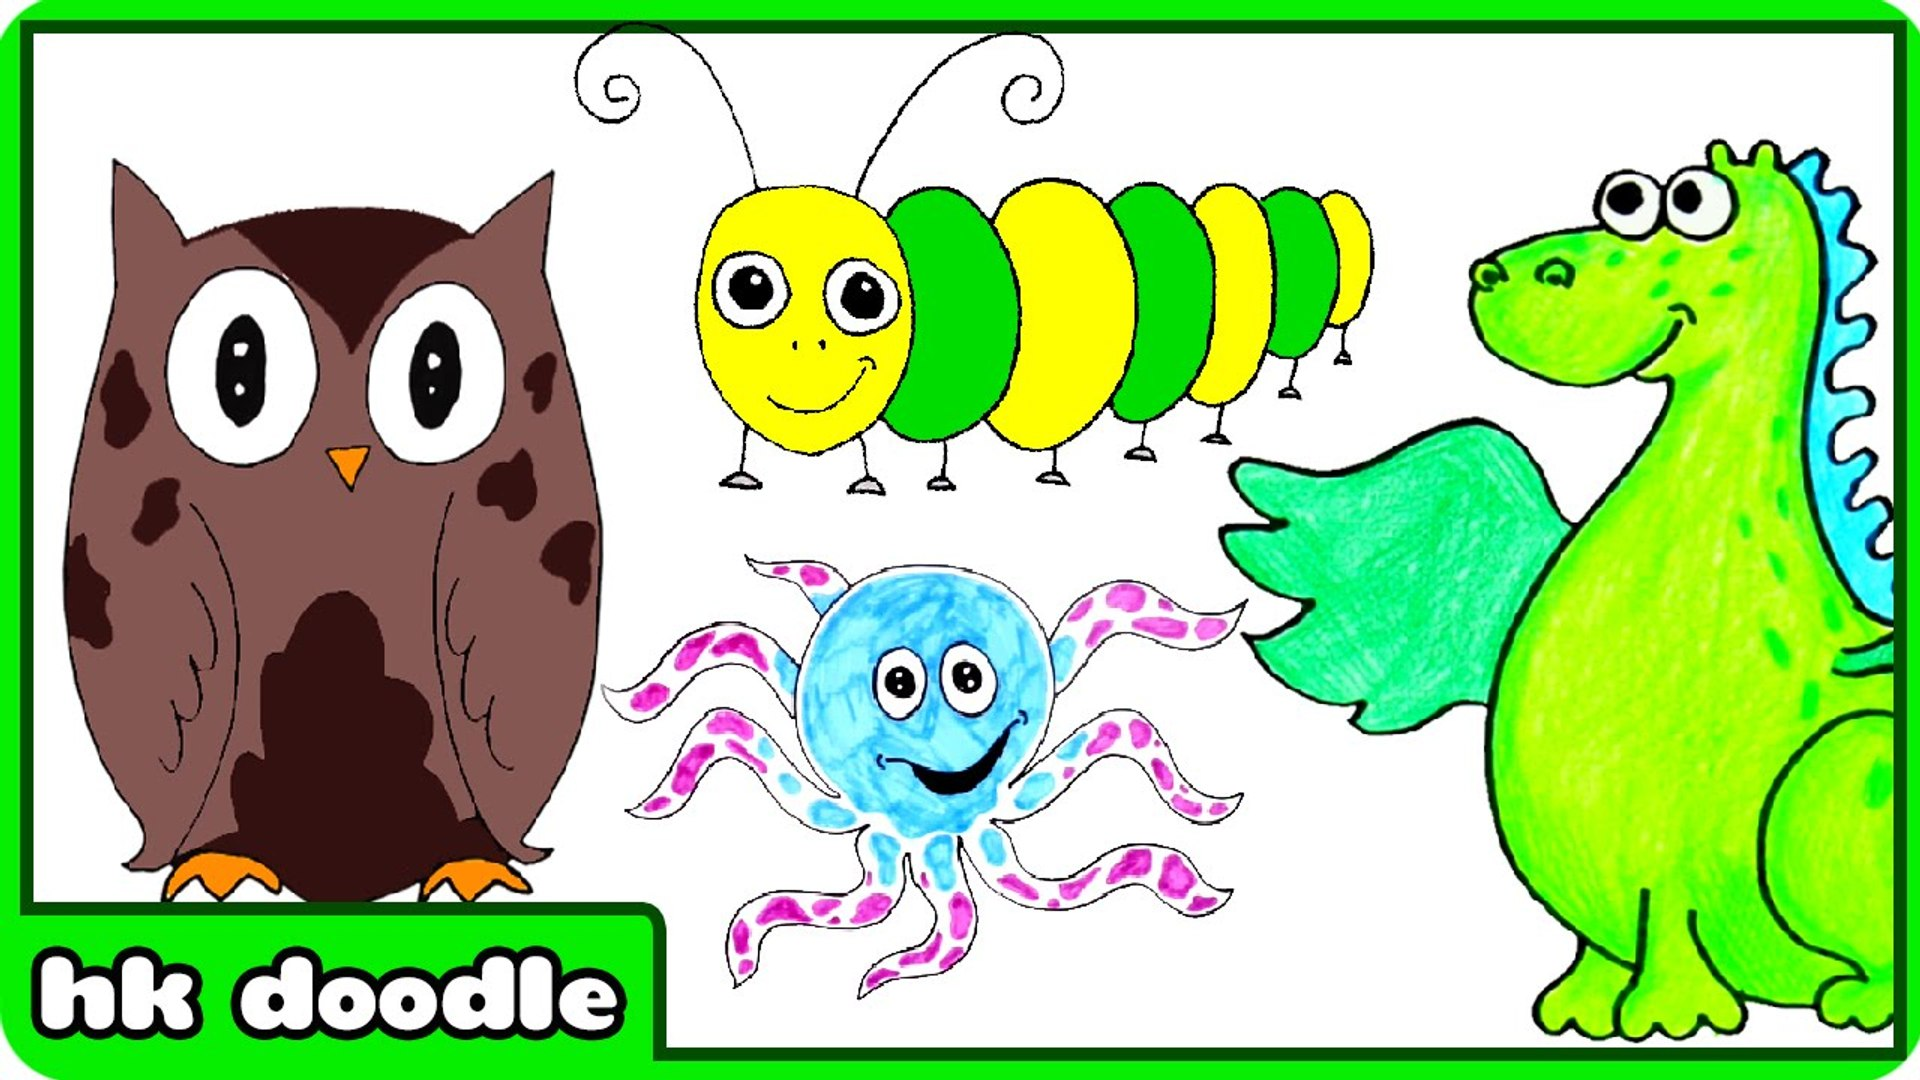 Easy Animal Drawings For Kids - Step By Step Drawing Tutorials For Beginners